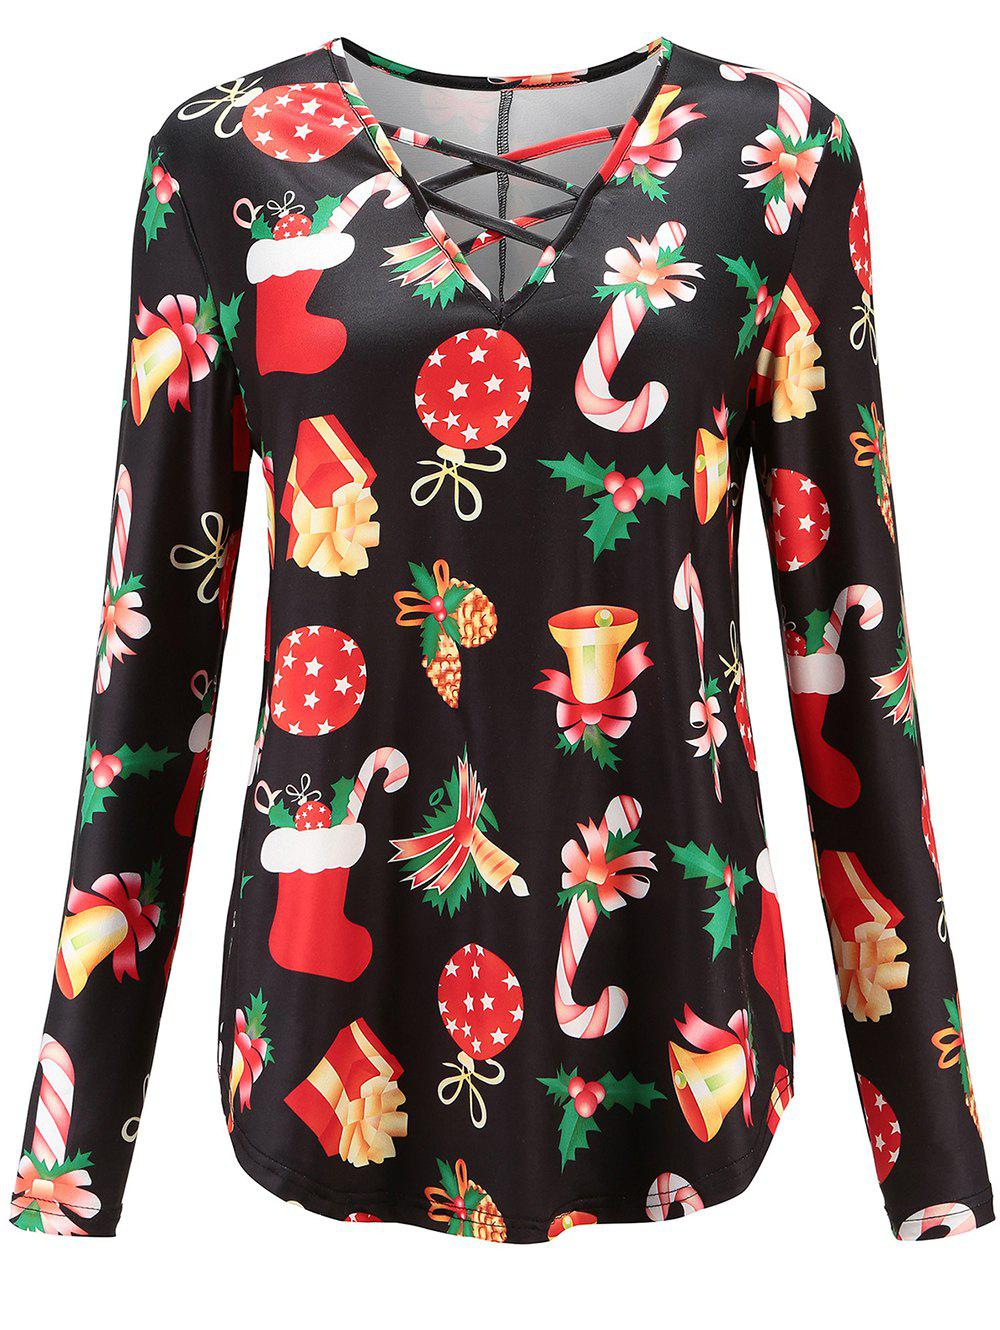 online womens long sleeve blouse christmas printed tunic t shirt tops